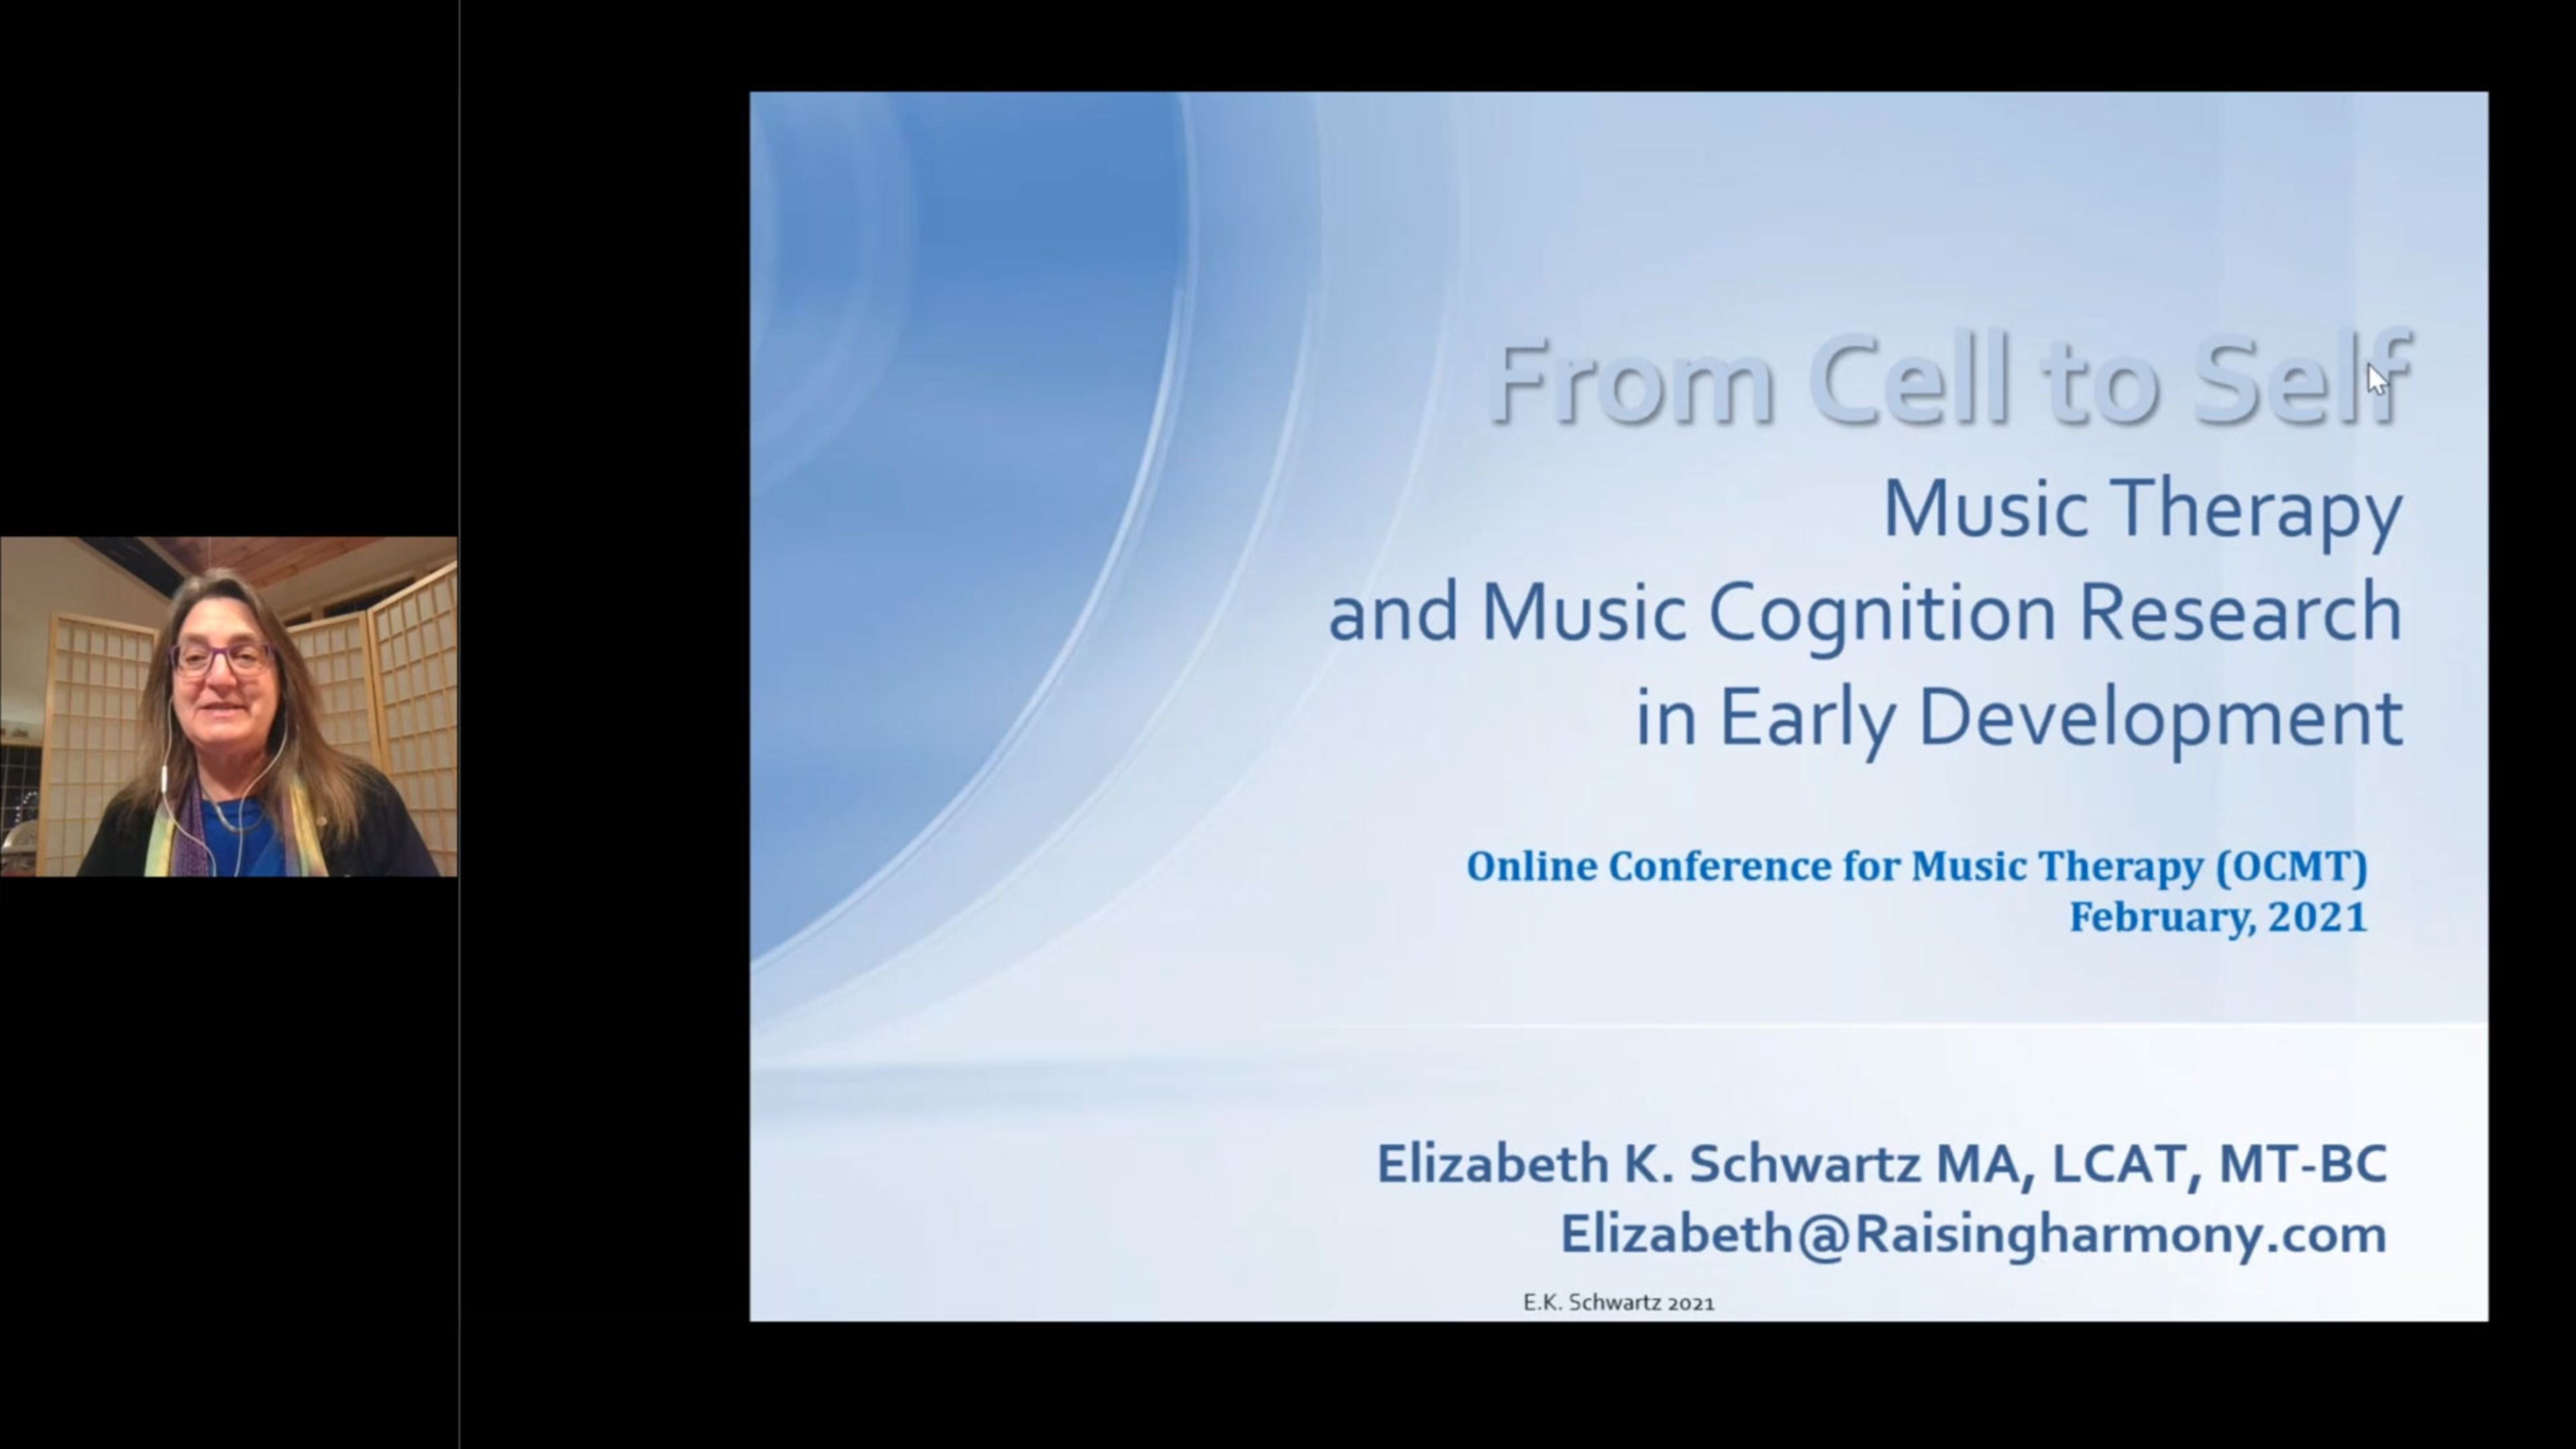 From Cell to Self: Music Therapy and Music Cognition Research in Early Development